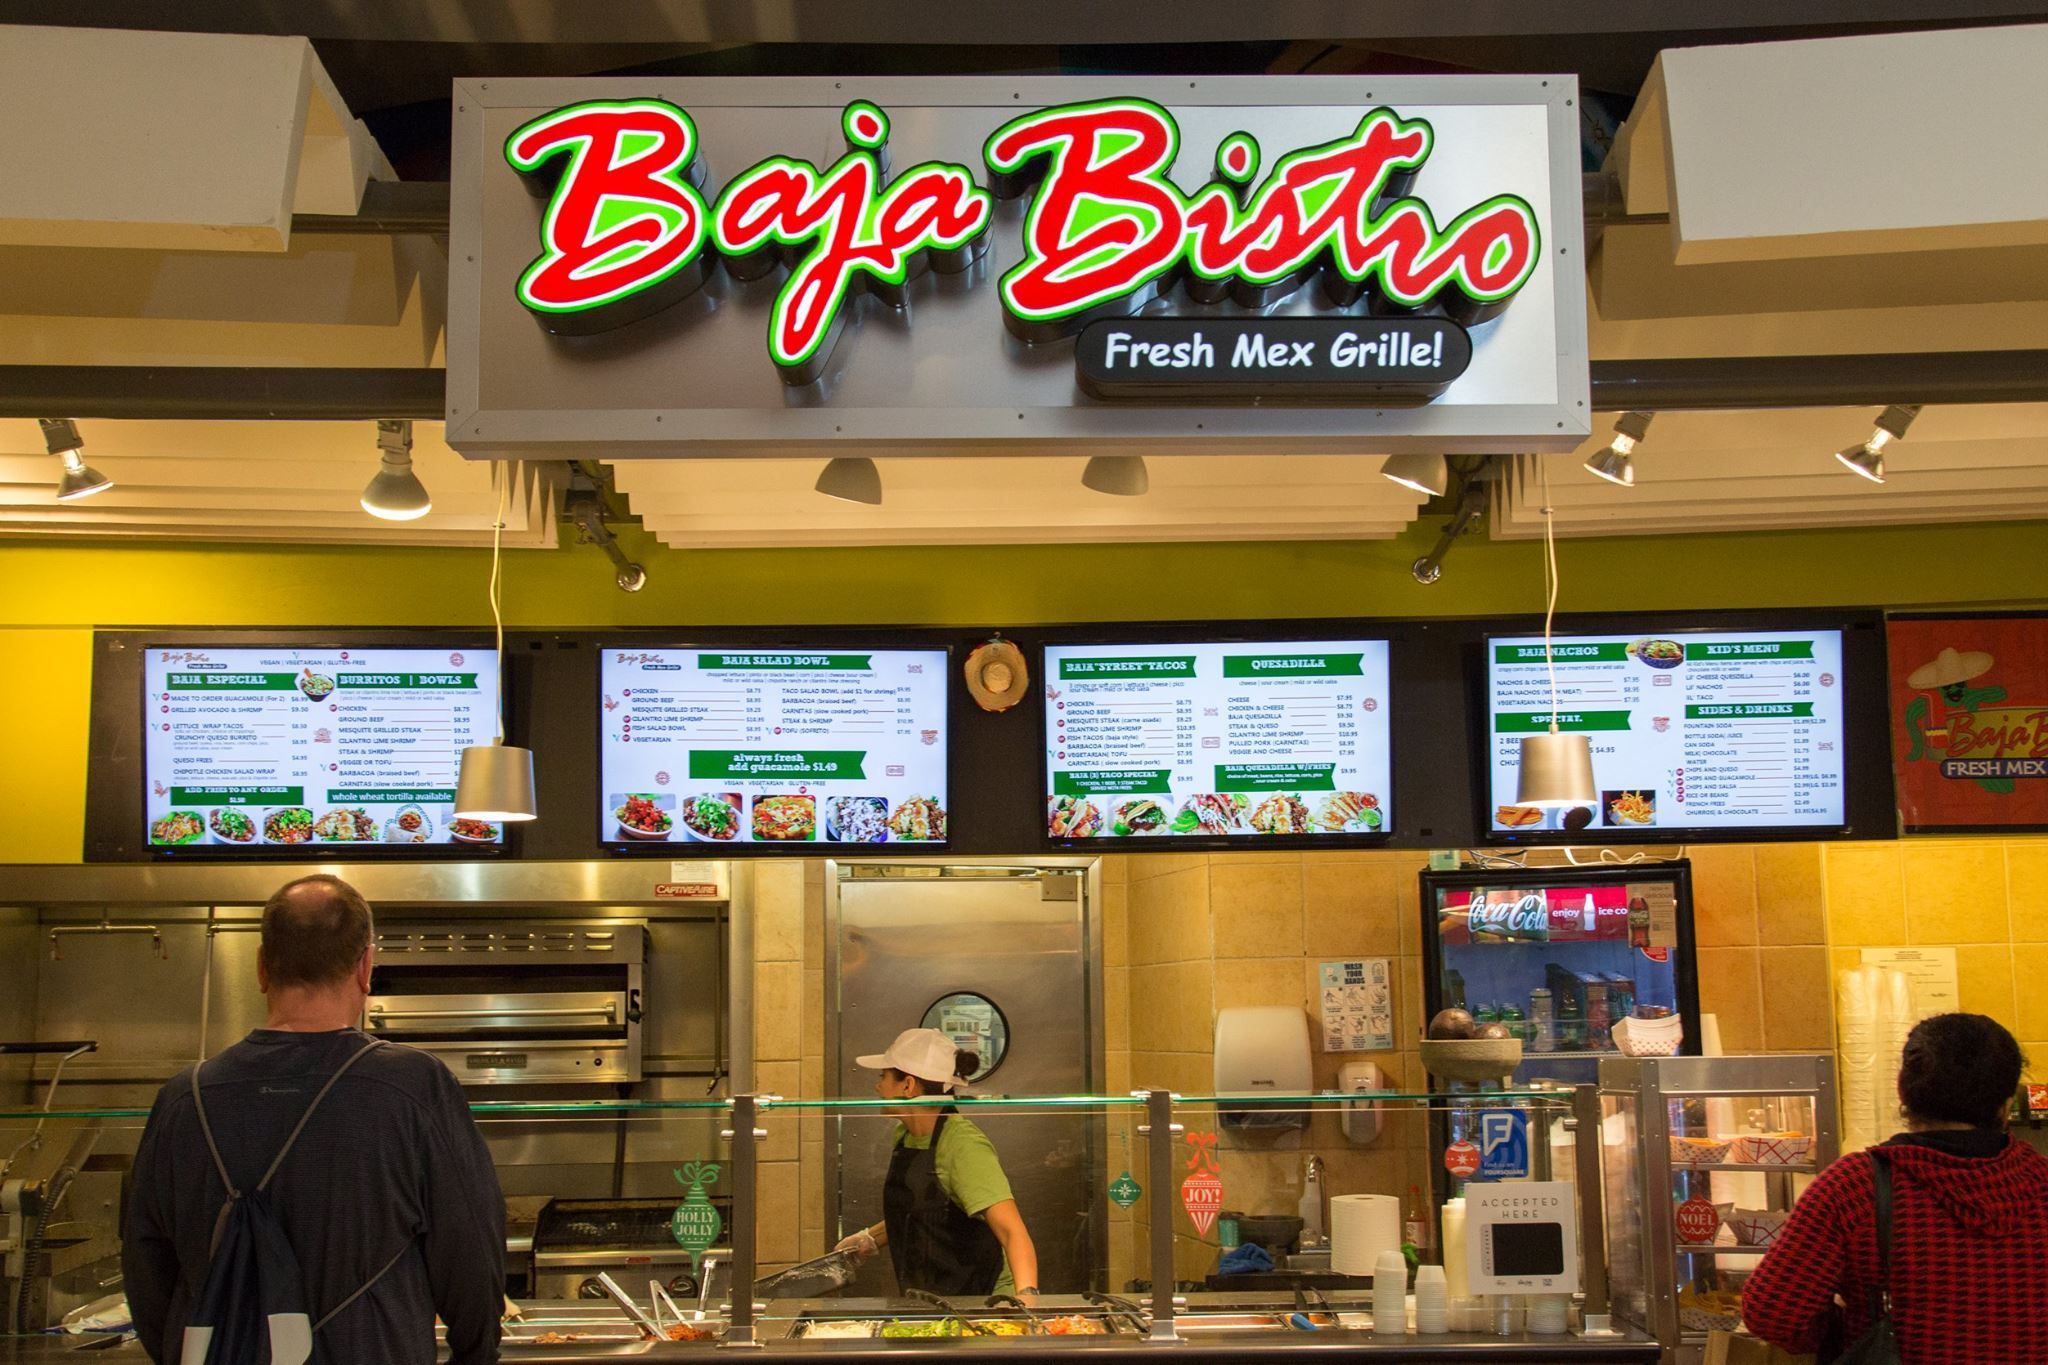 http://www.prnewswire.com/news-releases/mvix-partners-with-dc-metros-baja-bistro-for-a-digital-makeover-300191065.html